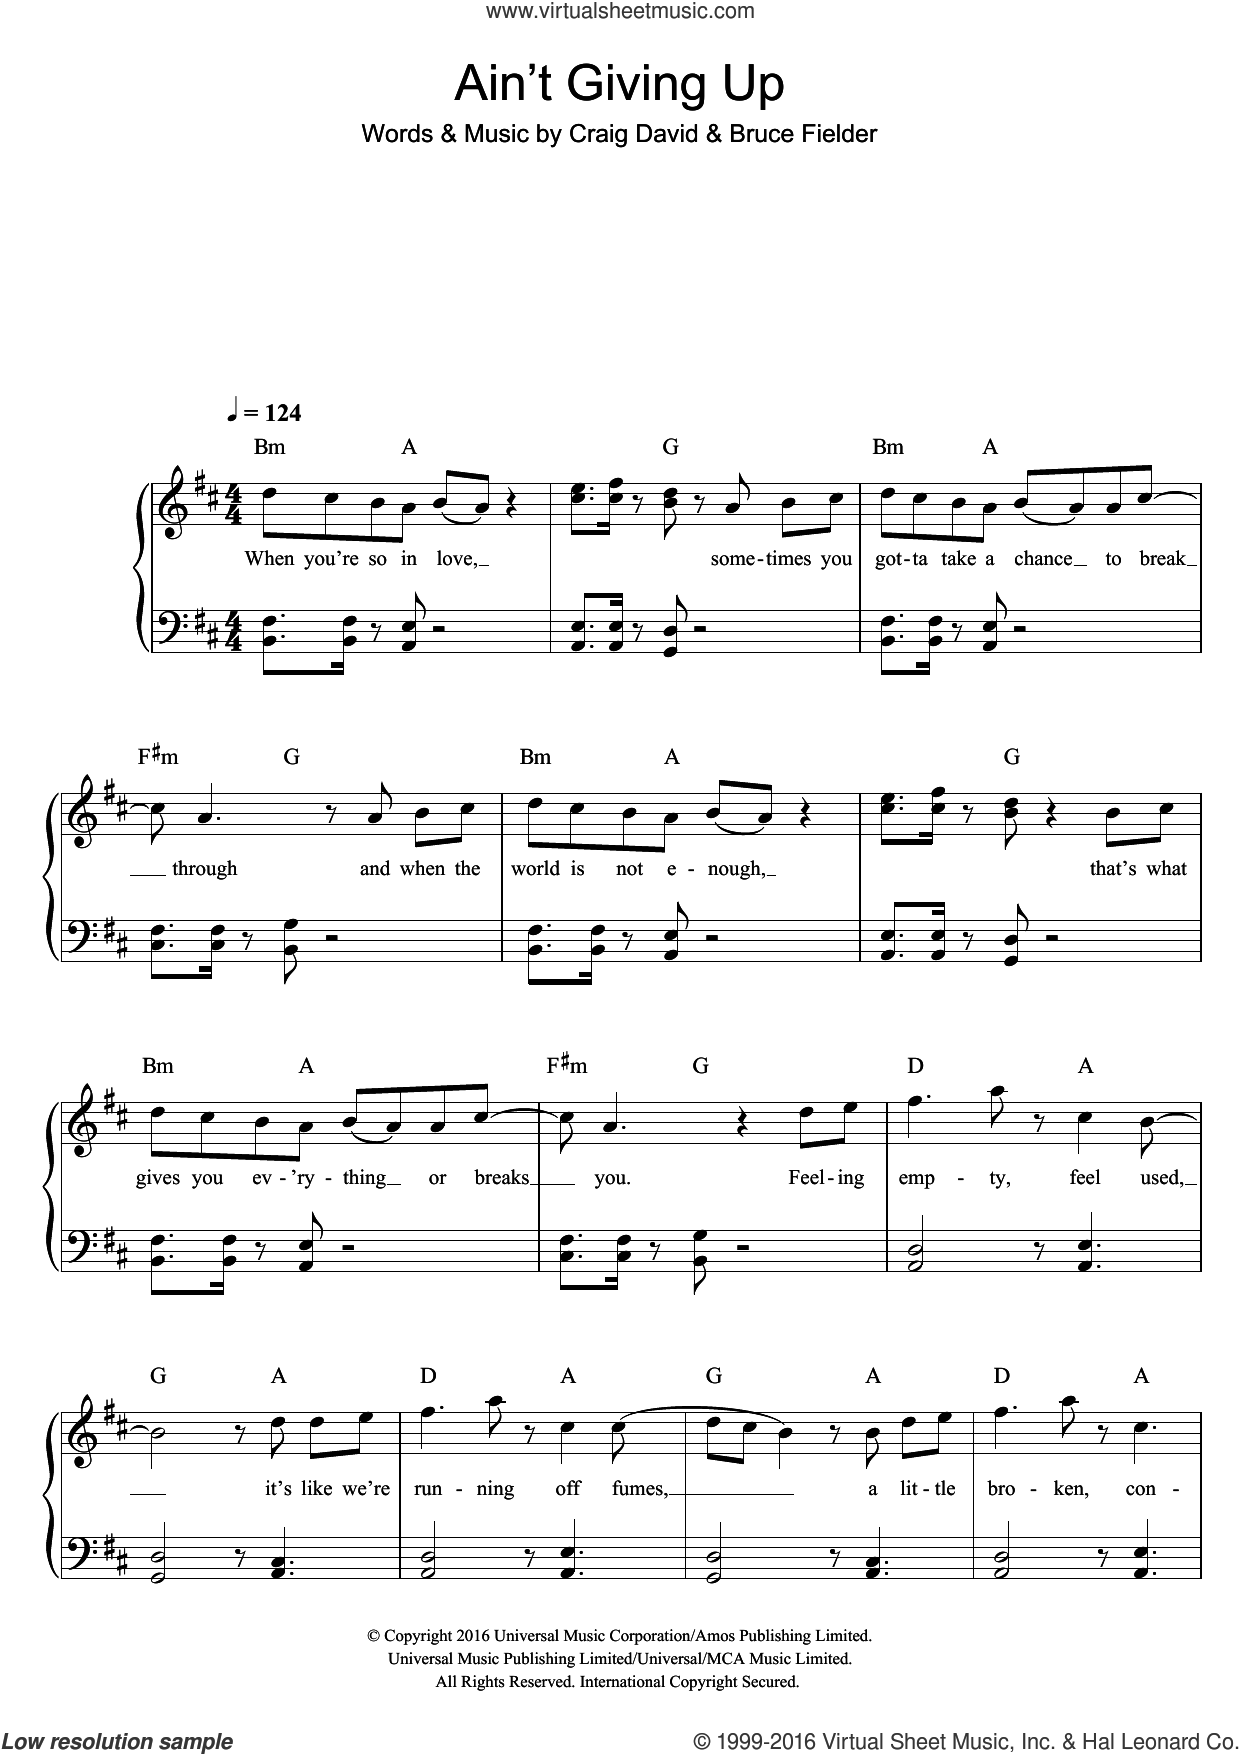 Ain't Giving Up (featuring Sigala) sheet music for piano solo by Bruce Fielder and Craig David. Score Image Preview.